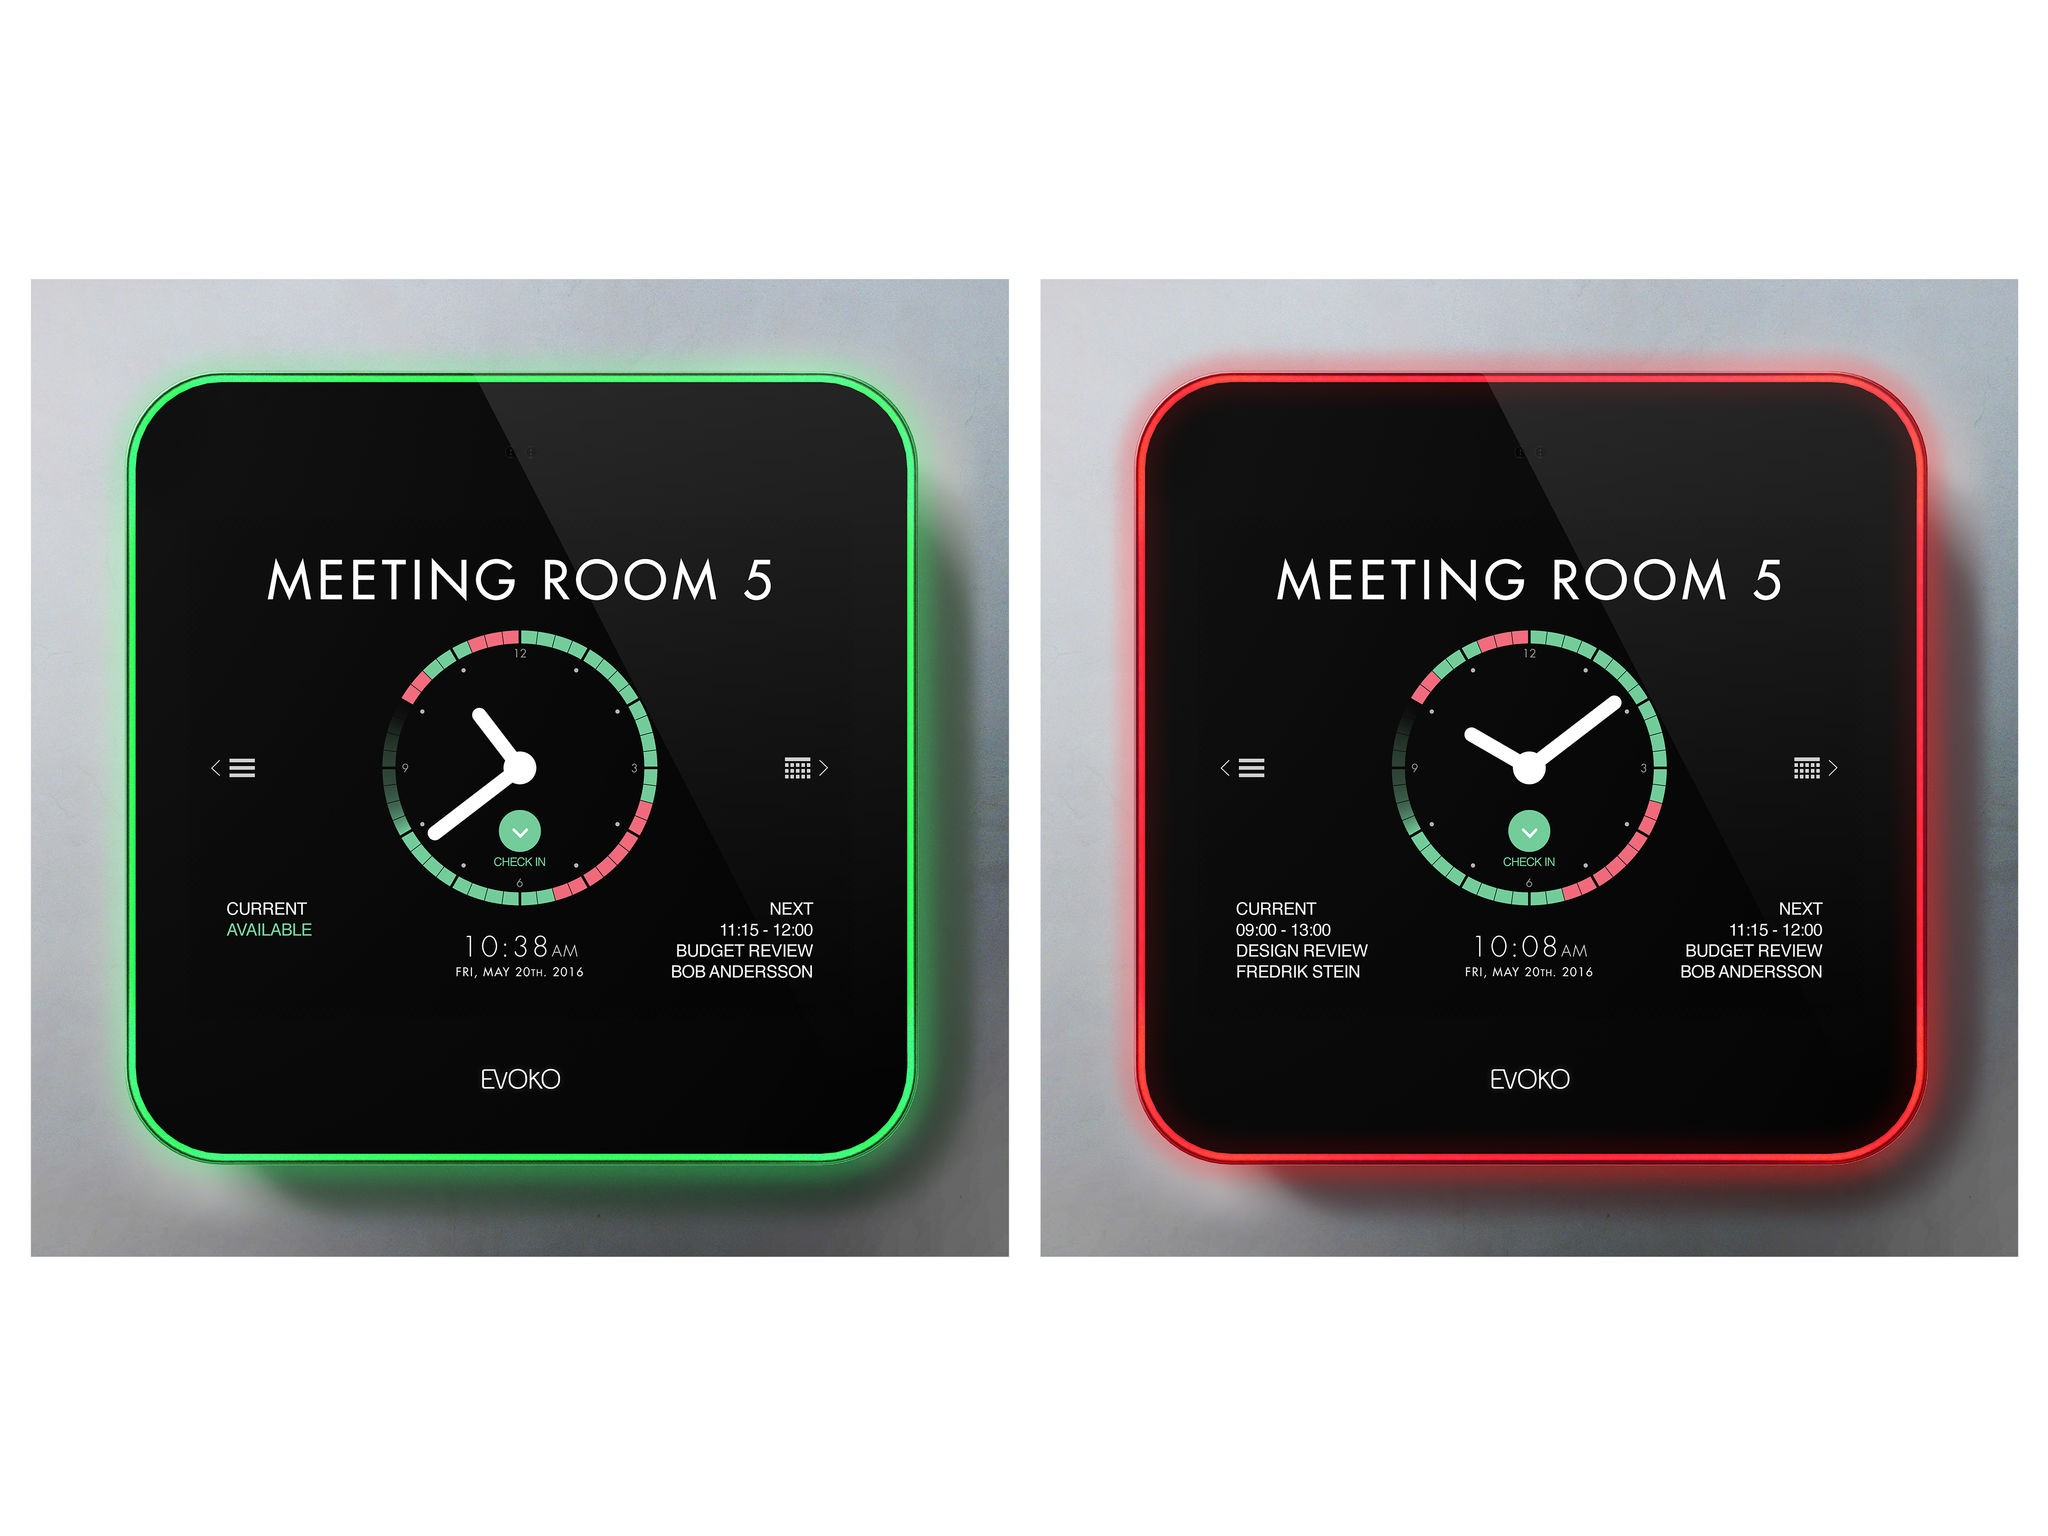 Evoko Liso! The next-generation room booking system